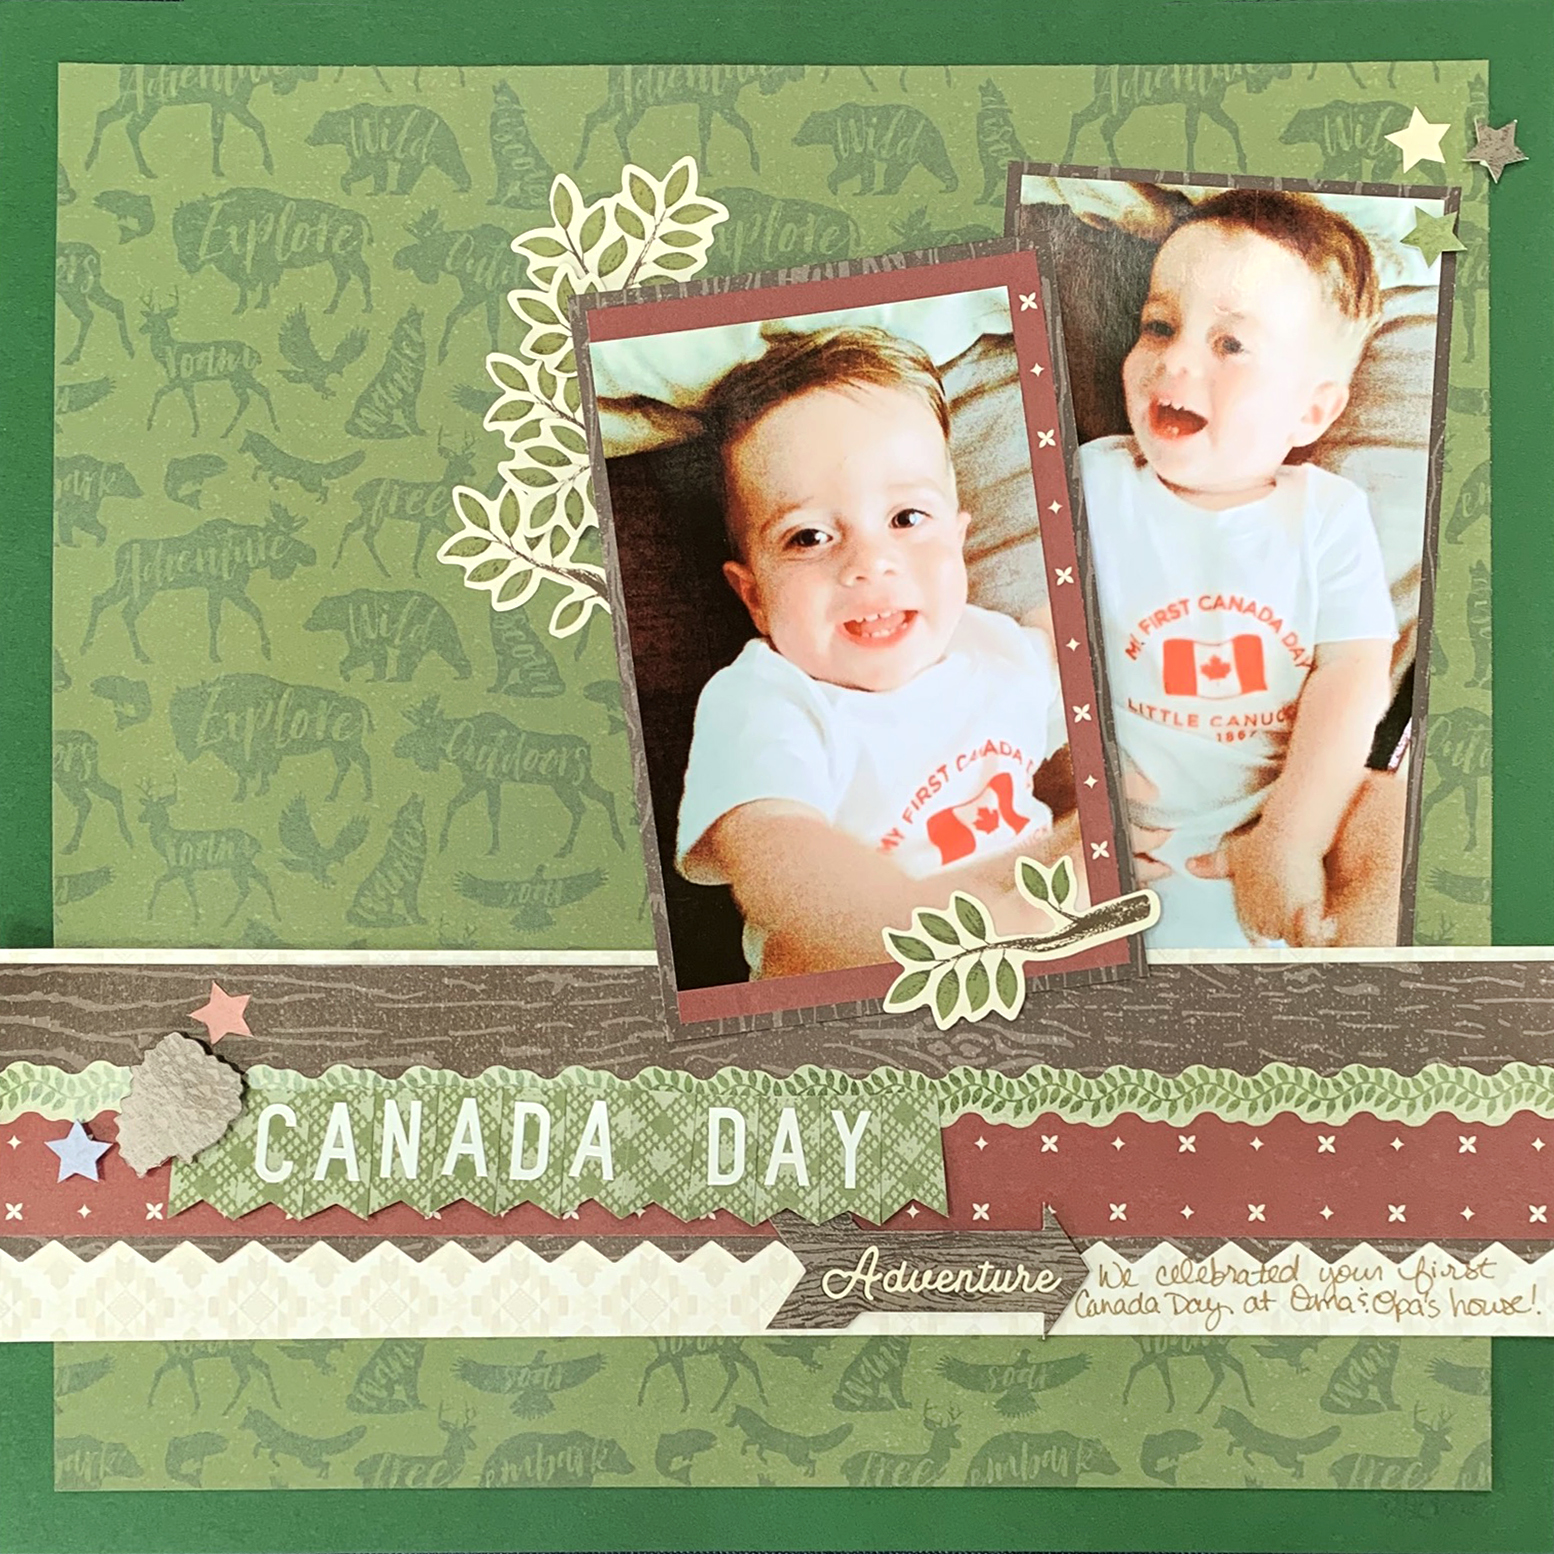 Canada-Day-Scrapbook-Layout-Creative-Memories